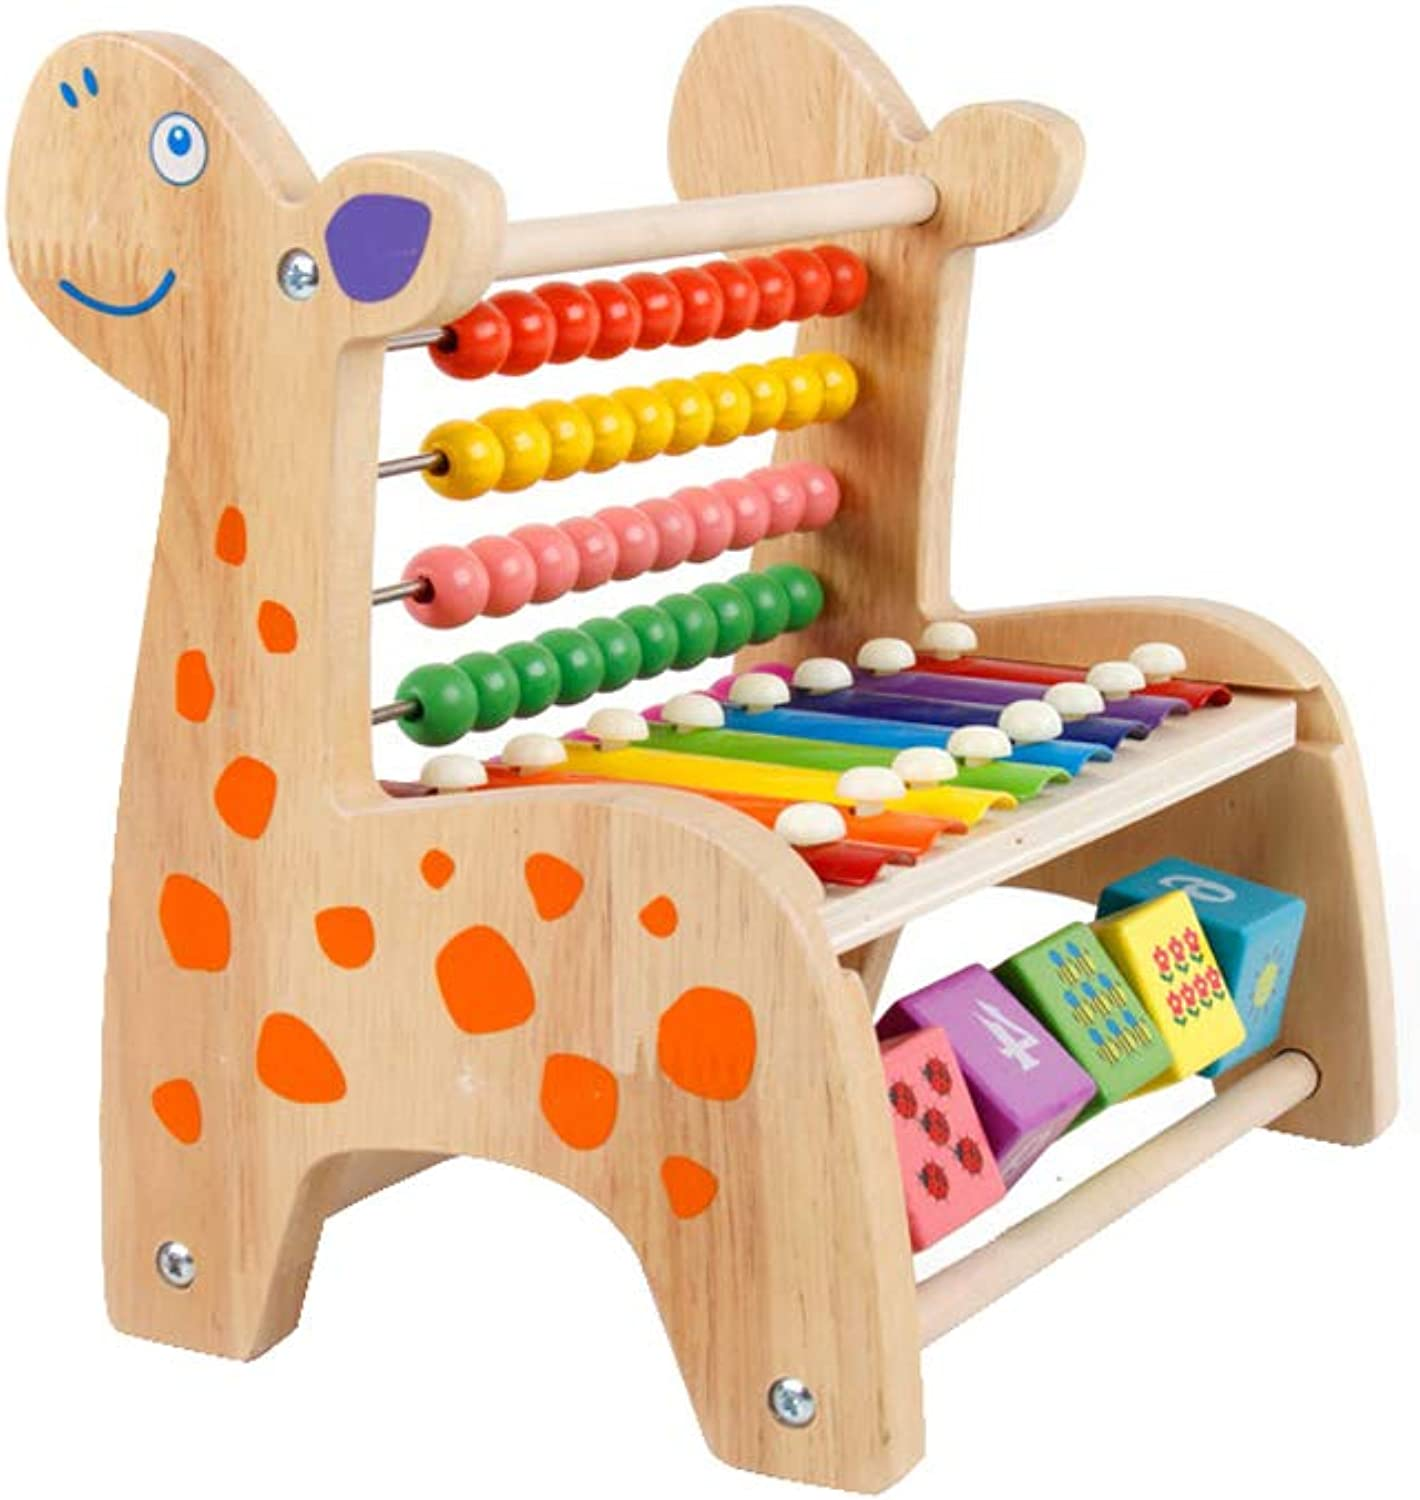 LINGLINGLINGLINGKnock on the piano Knocking On The Wooden Beaded Music Toy Puzzle Early Education Xylophone Boy Girl (color   Beige)